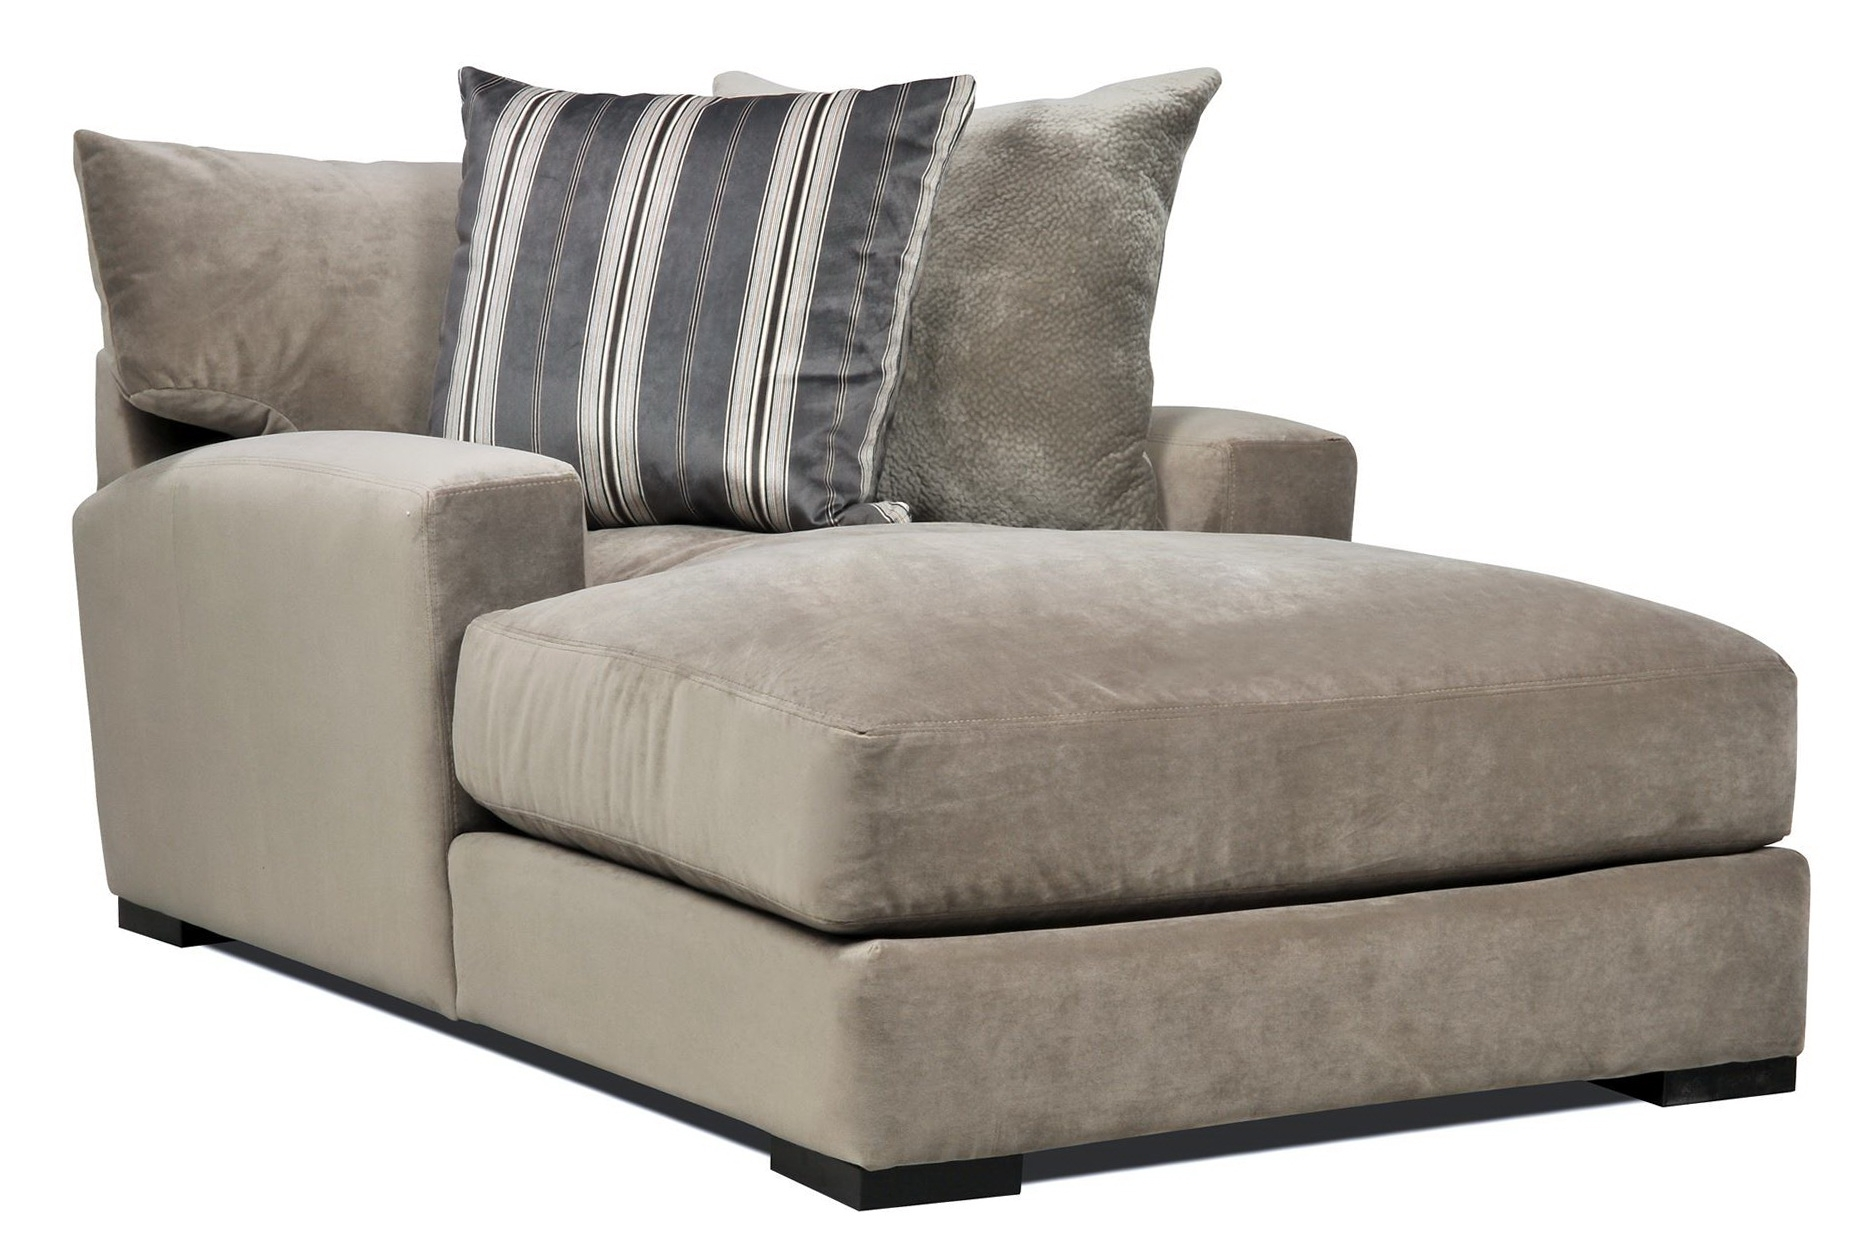 Current Double Wide Chaise Lounge Indoor With 2 Cushions (View 7 of 15)